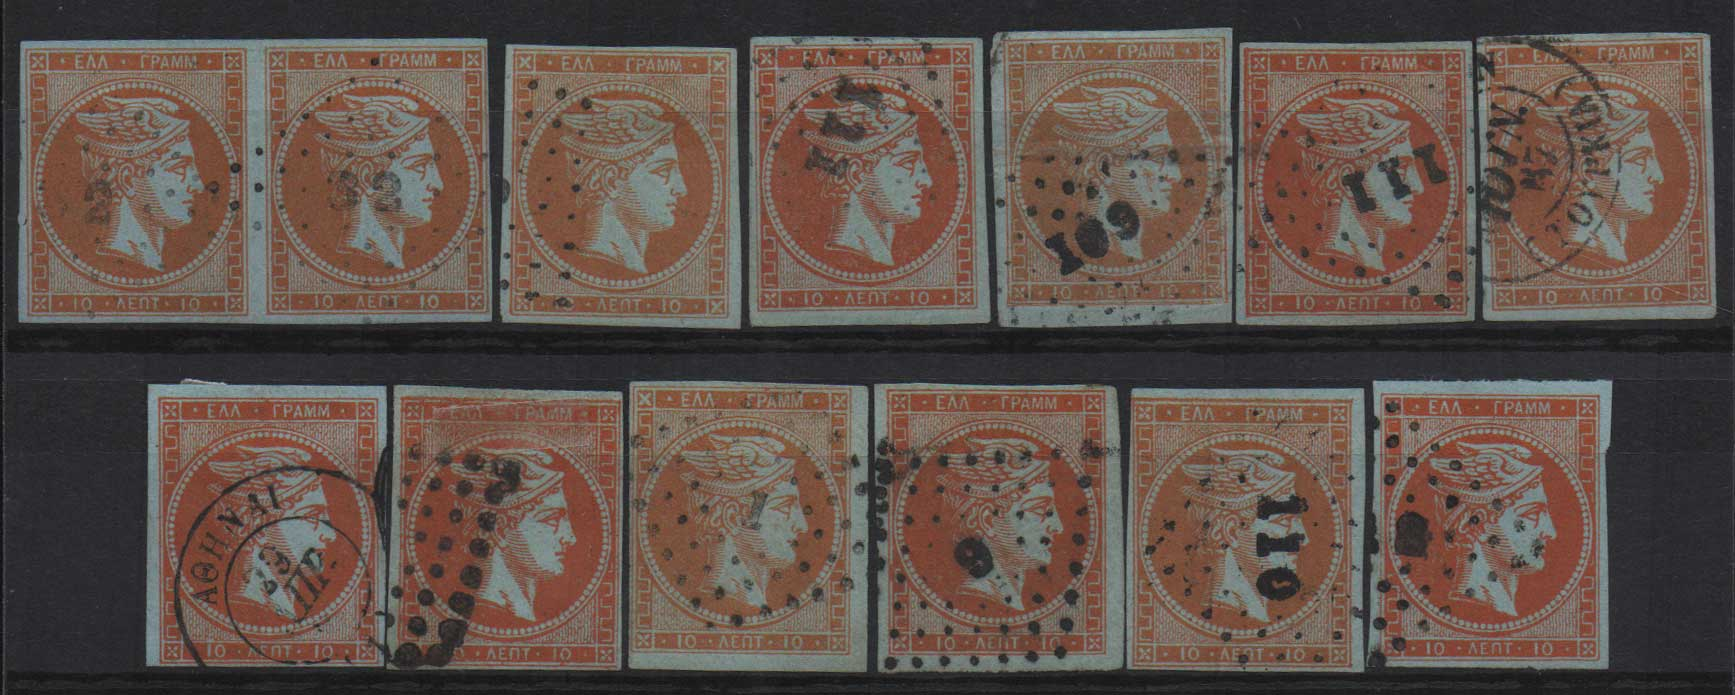 Lot 189 - GREECE-  LARGE HERMES HEAD 1862/67 consecutive athens printings -  Athens Auctions Public Auction 63 General Stamp Sale